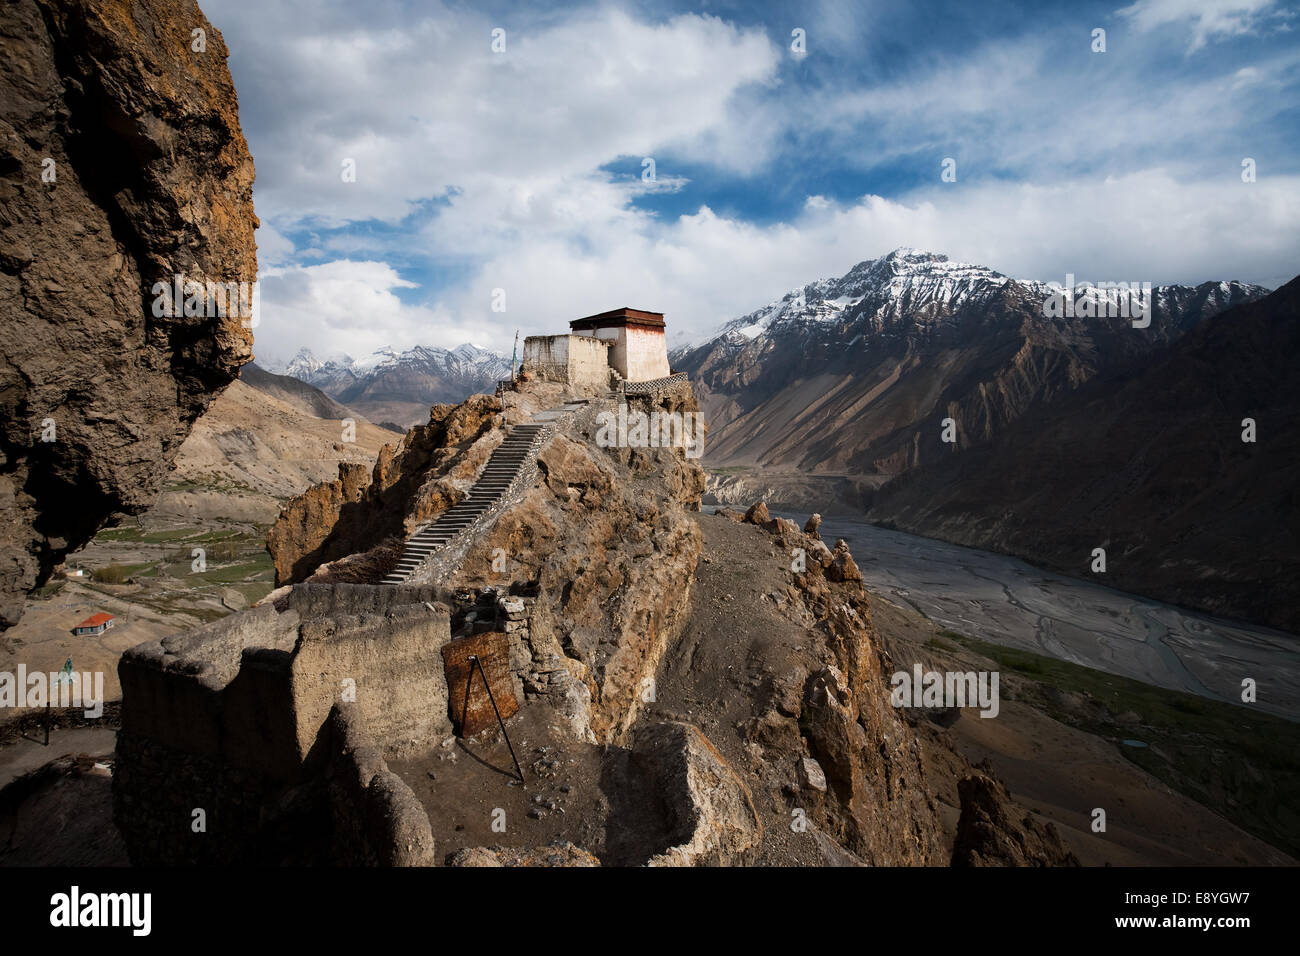 Dhankar Monastery Valley Below Landscape - Stock Image